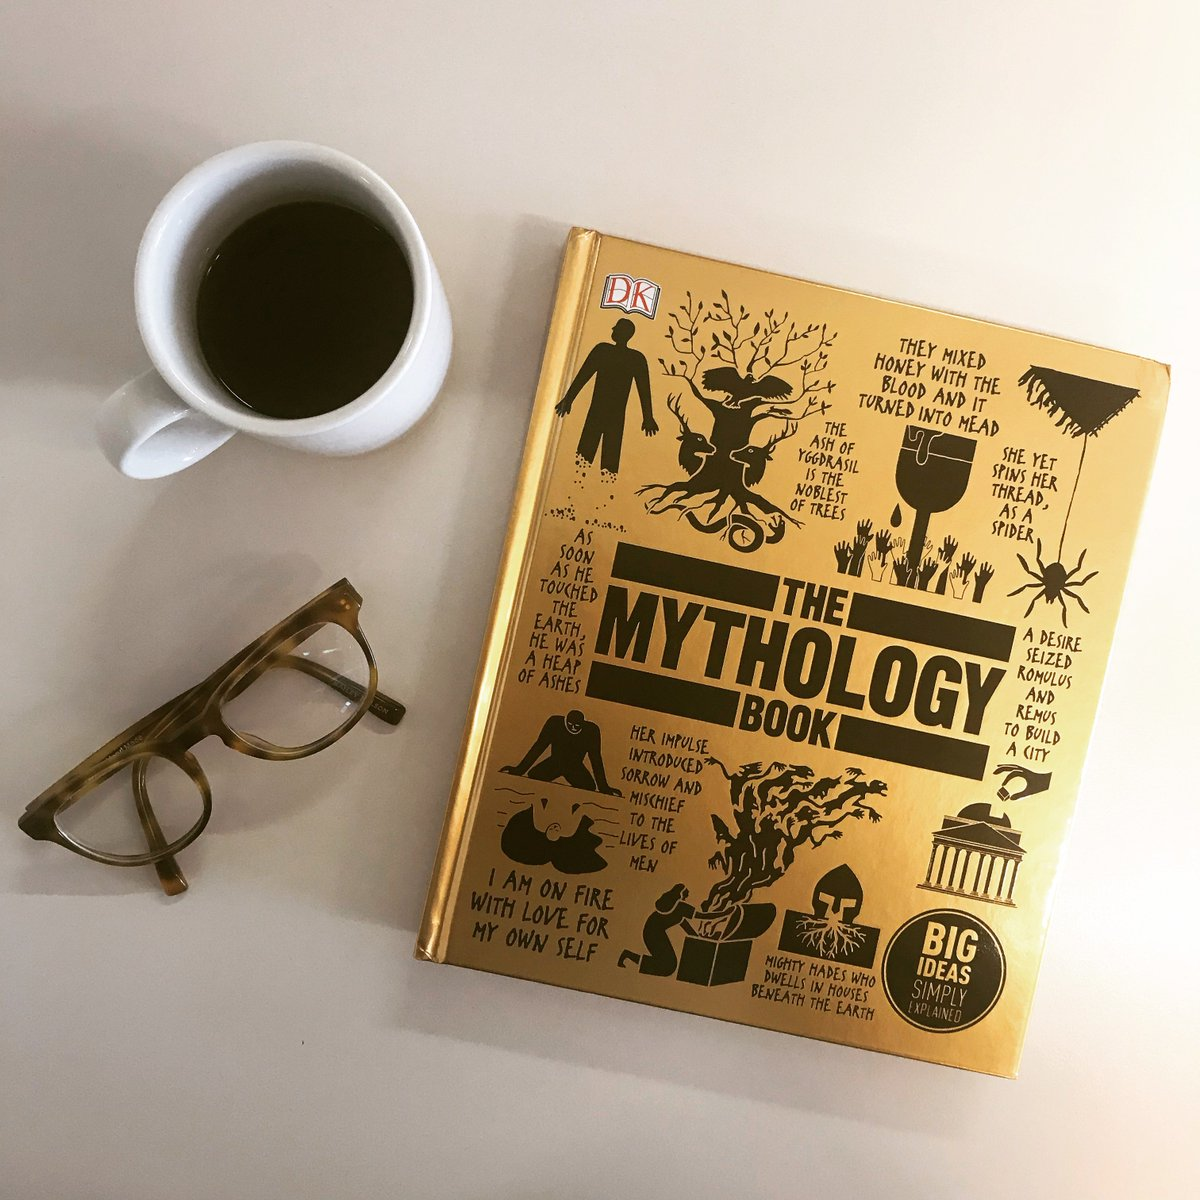 Dk Books Uk On Twitter Treat Yourself To A Cup Of Coffee Hours The Couch And Golden Gem Book Dive Into Mythology